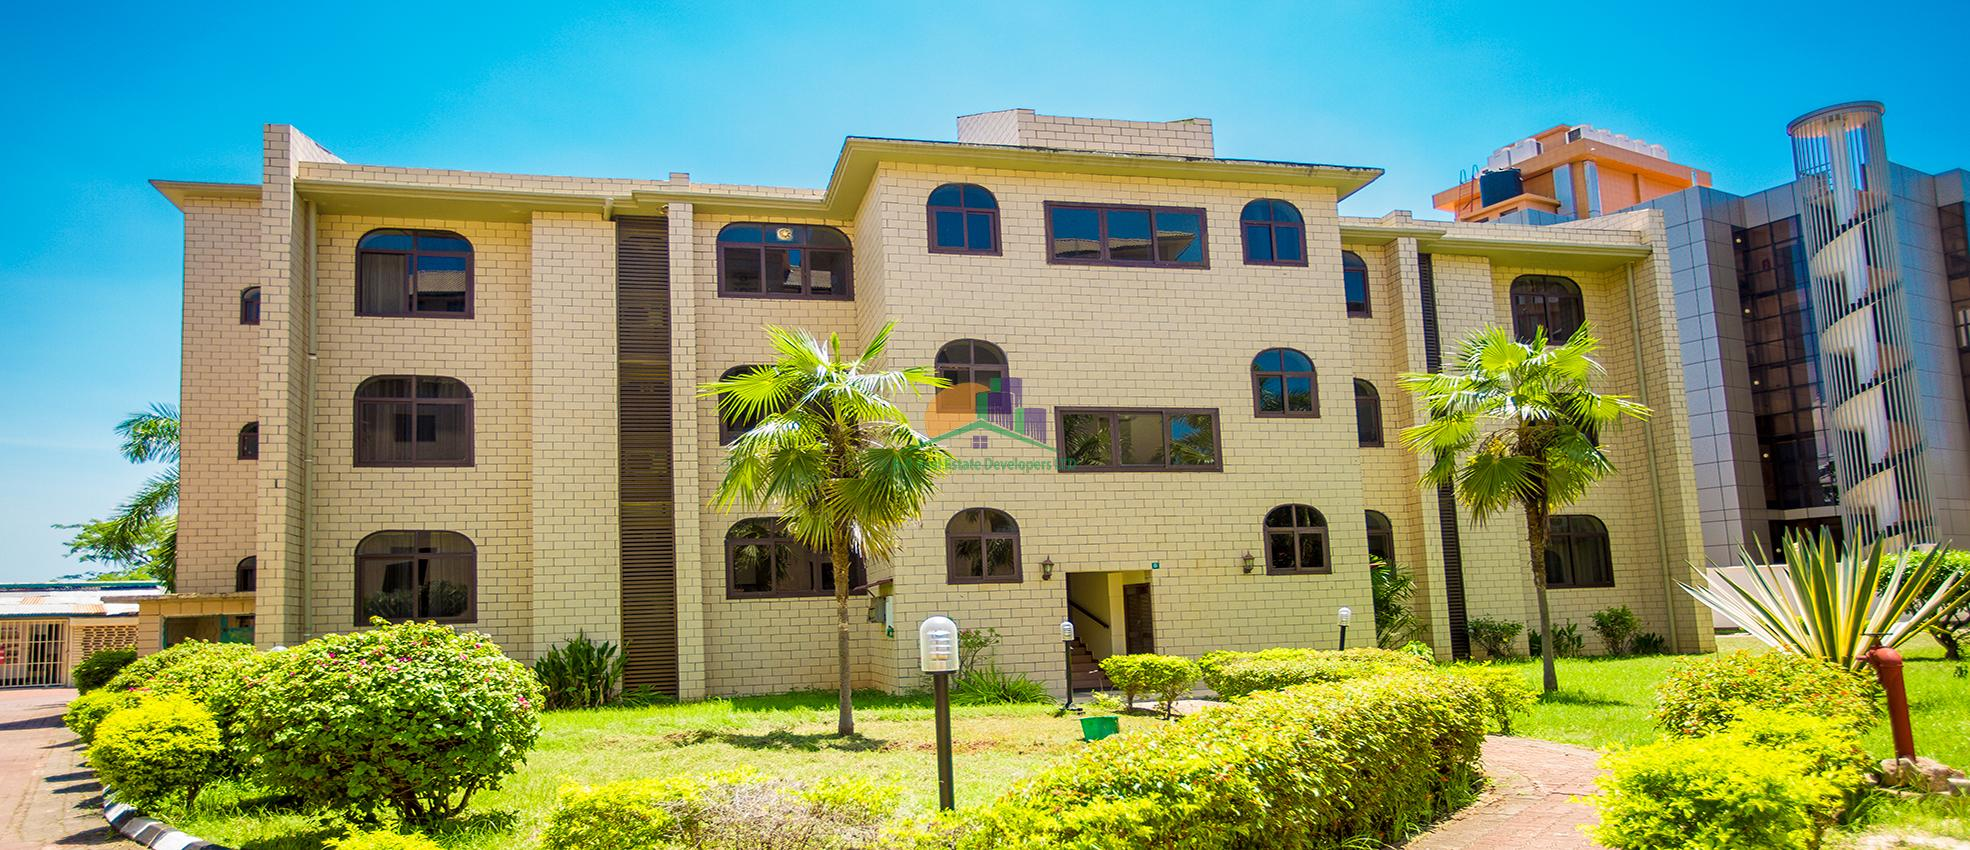 Staywell Apartments and Villas for Rent in Masaki Dar es salaam